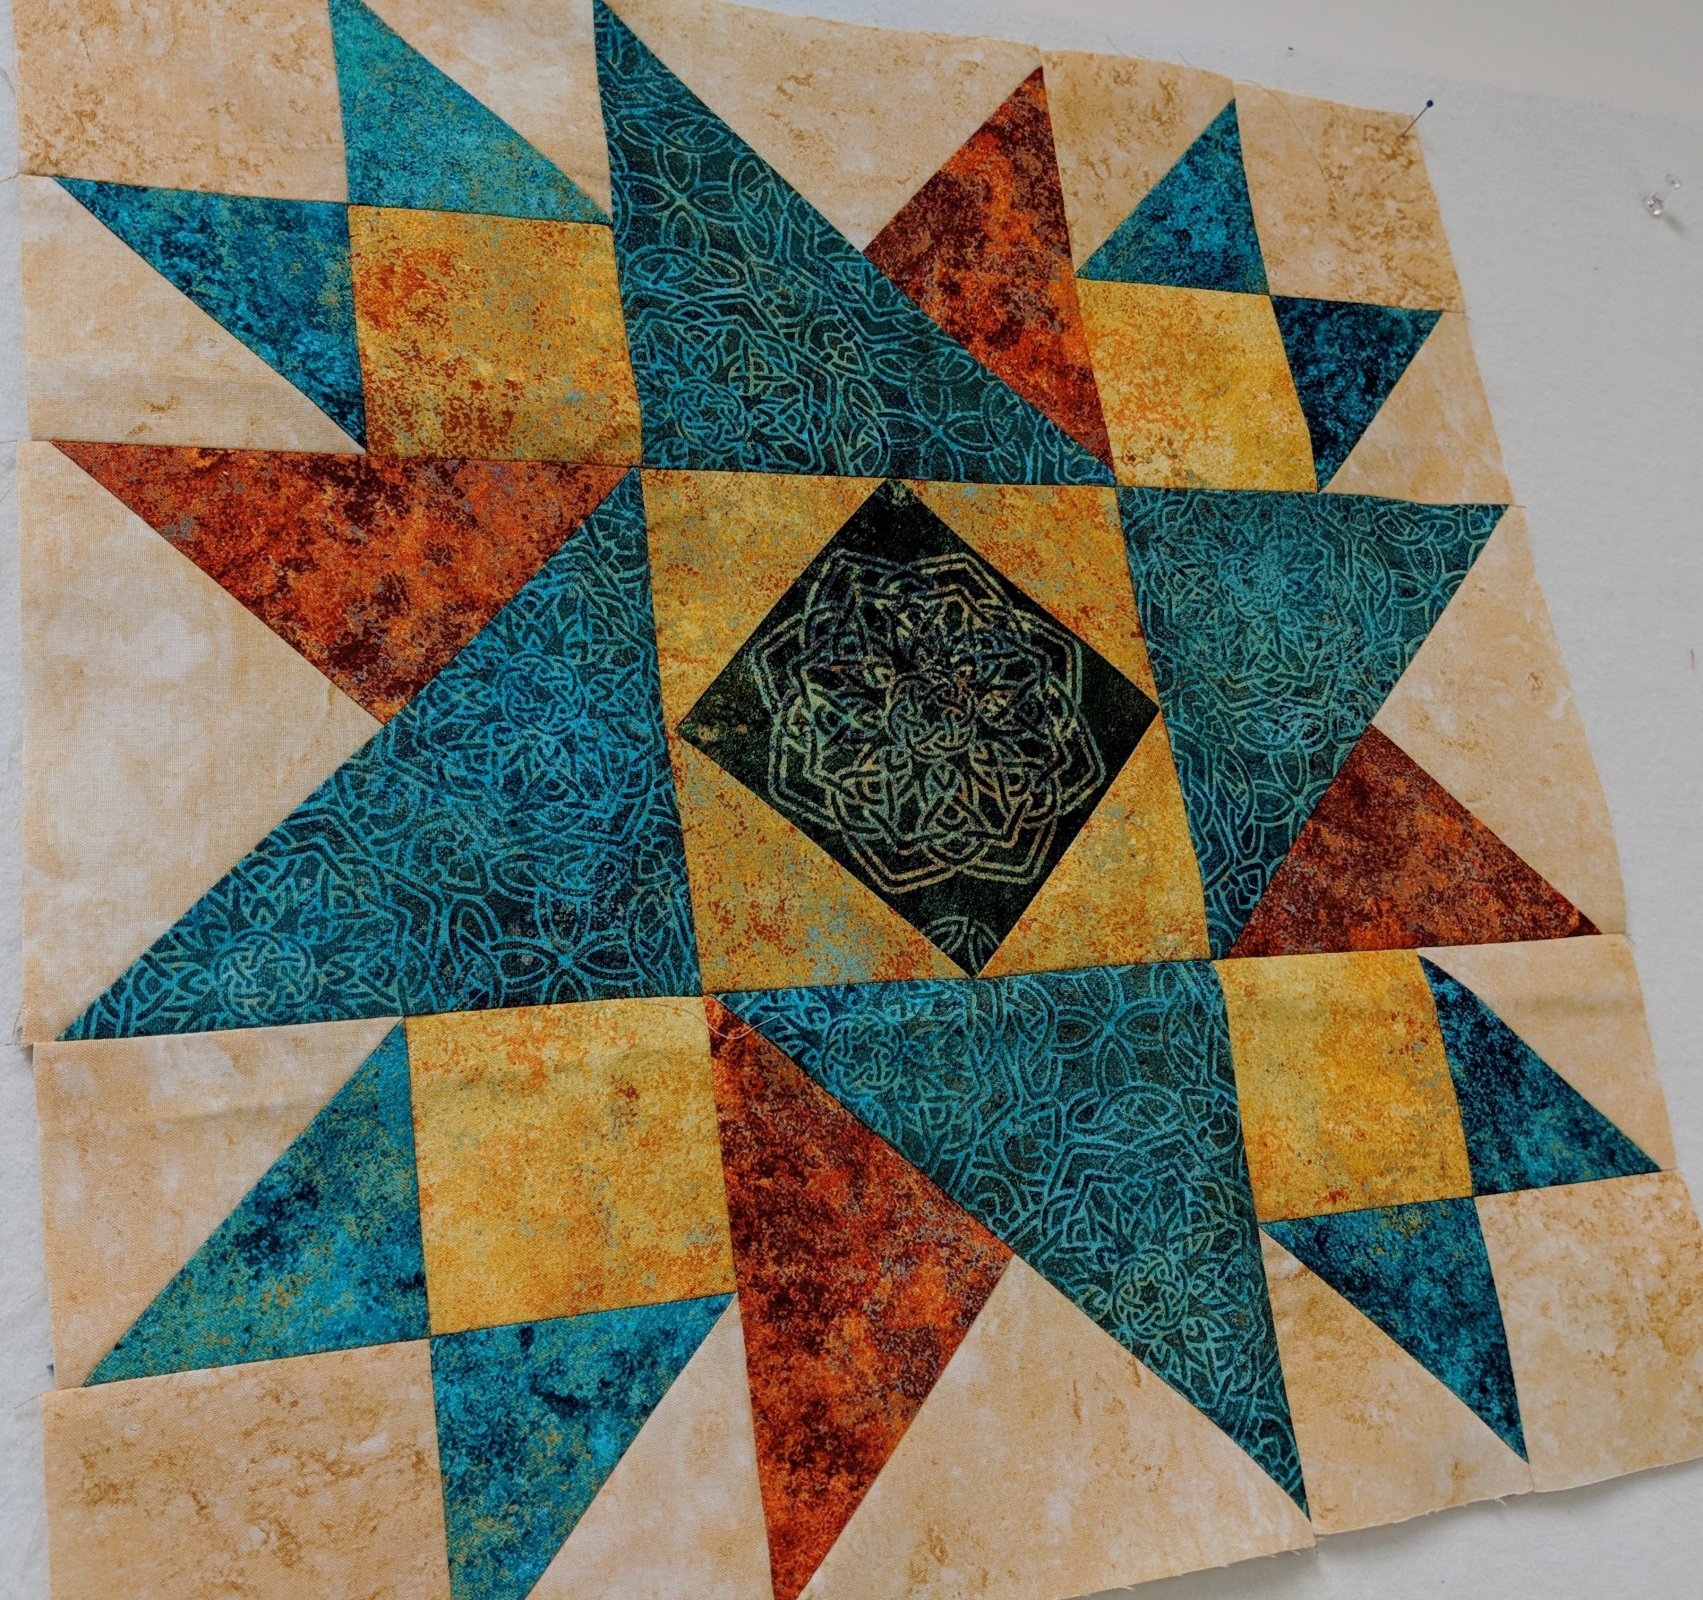 SWD Standing Star Stonehenge Solstice Block Kit for the 2019 Stonehenge Block Party from Northcott